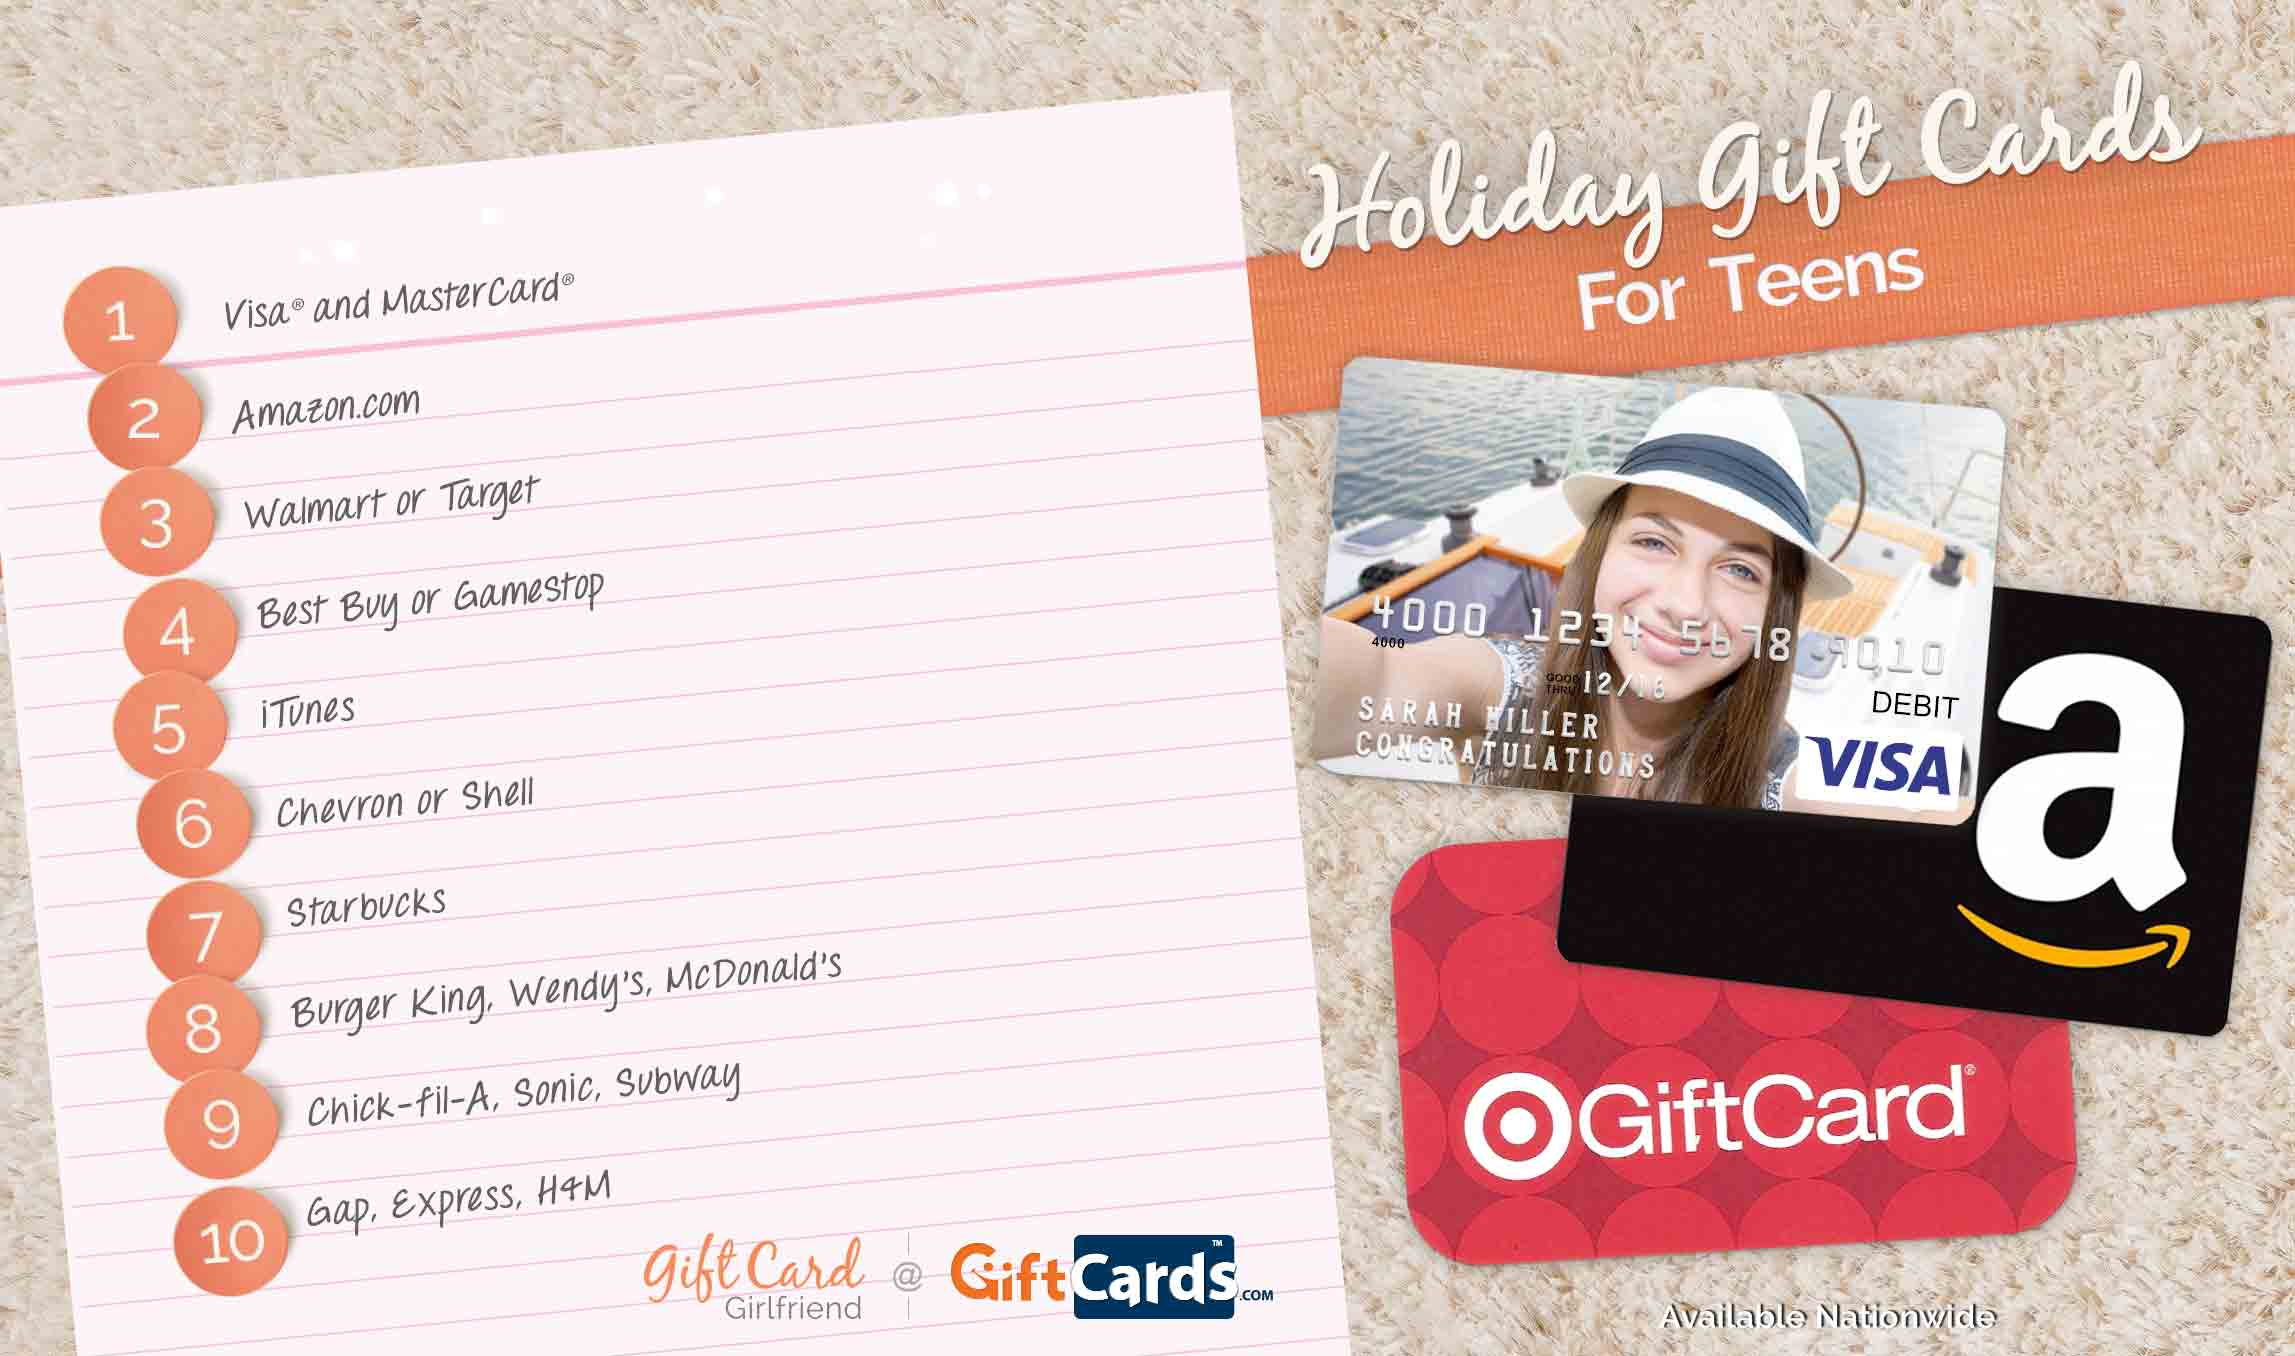 top gift cards for teens - Best Gifts Christmas 2014